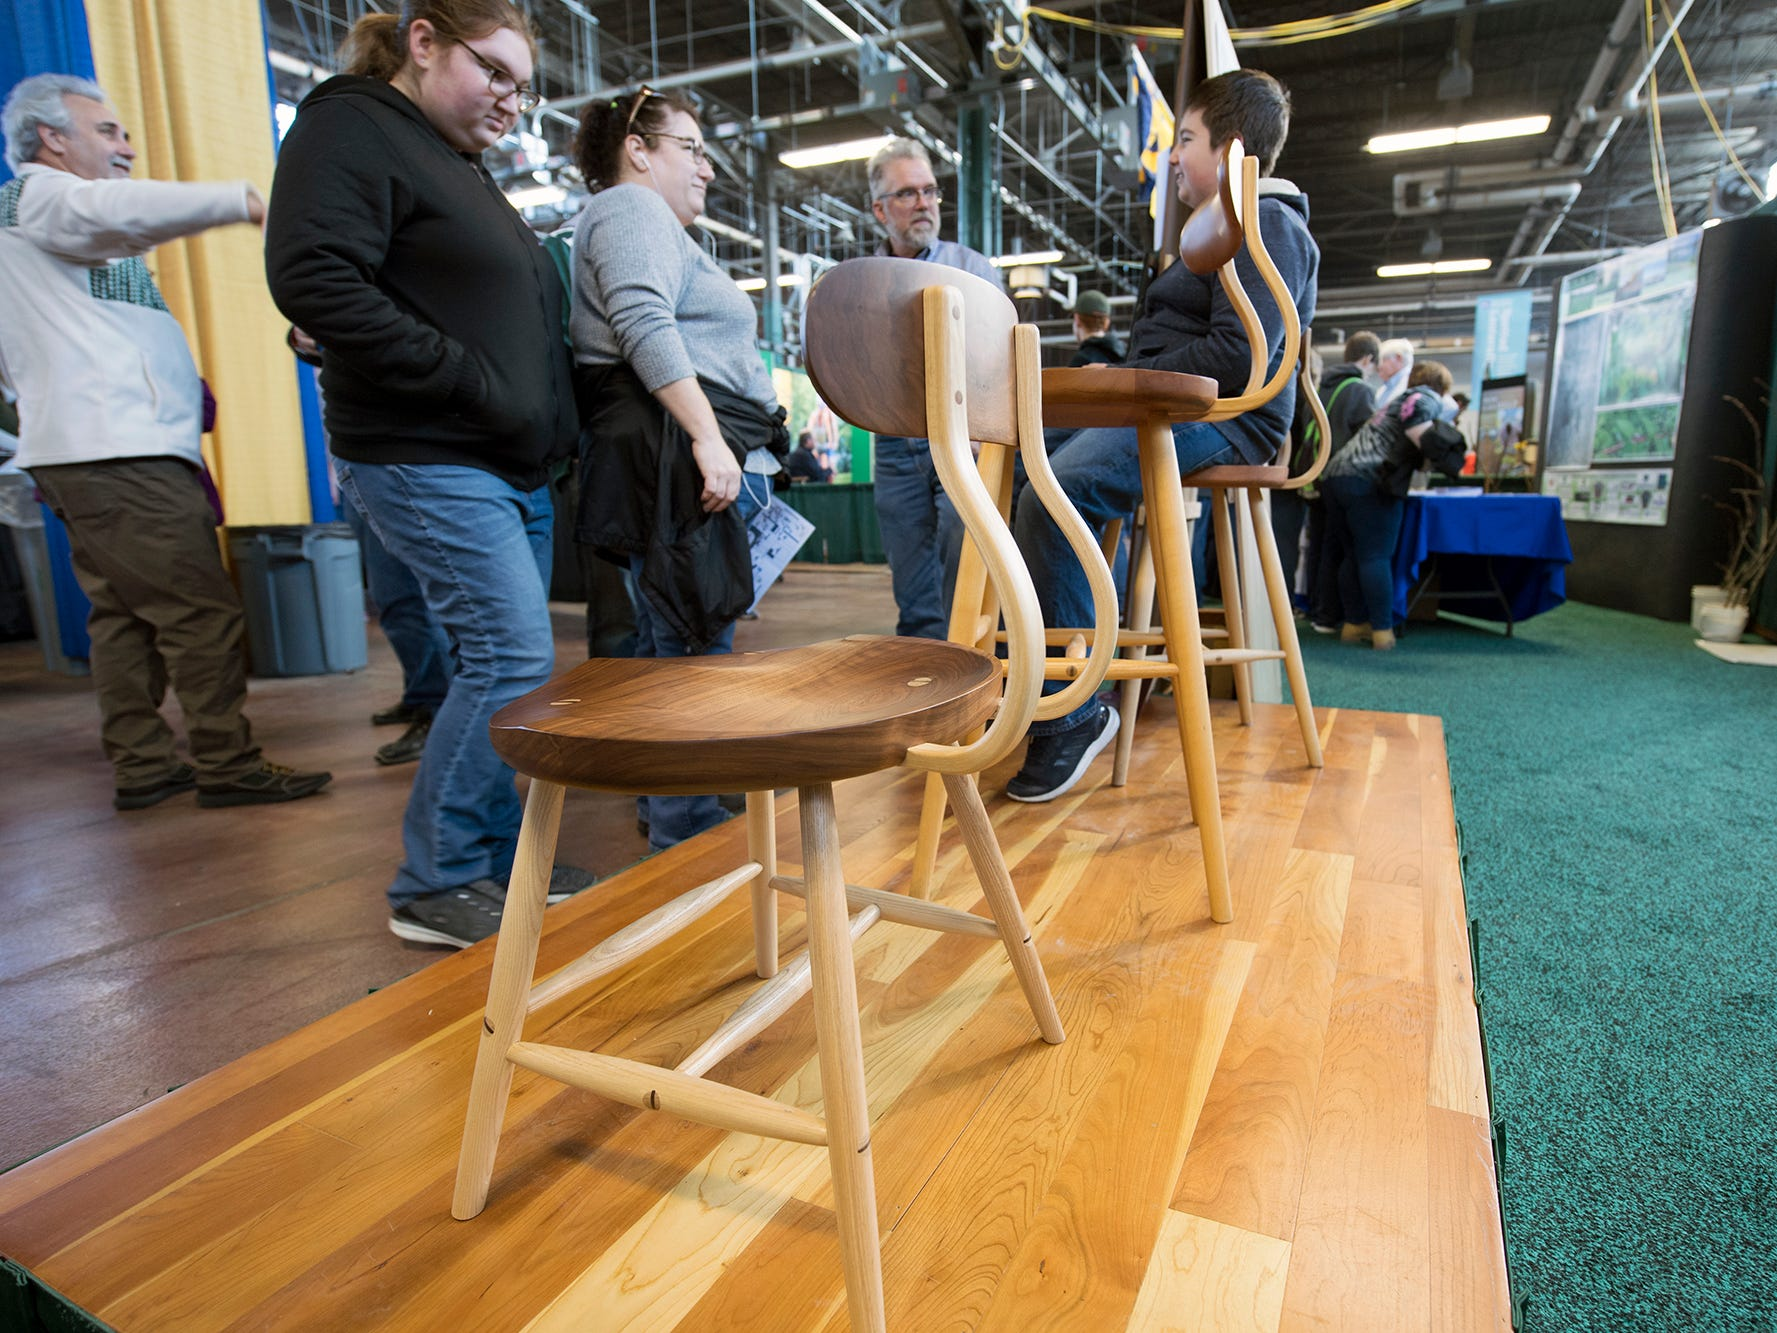 Interesting wooden chairs on display at the Pennsylvania Hardwood display during The 103rd Pennsylvania Farm Show in Harrisburg Sunday January 6, 2019.